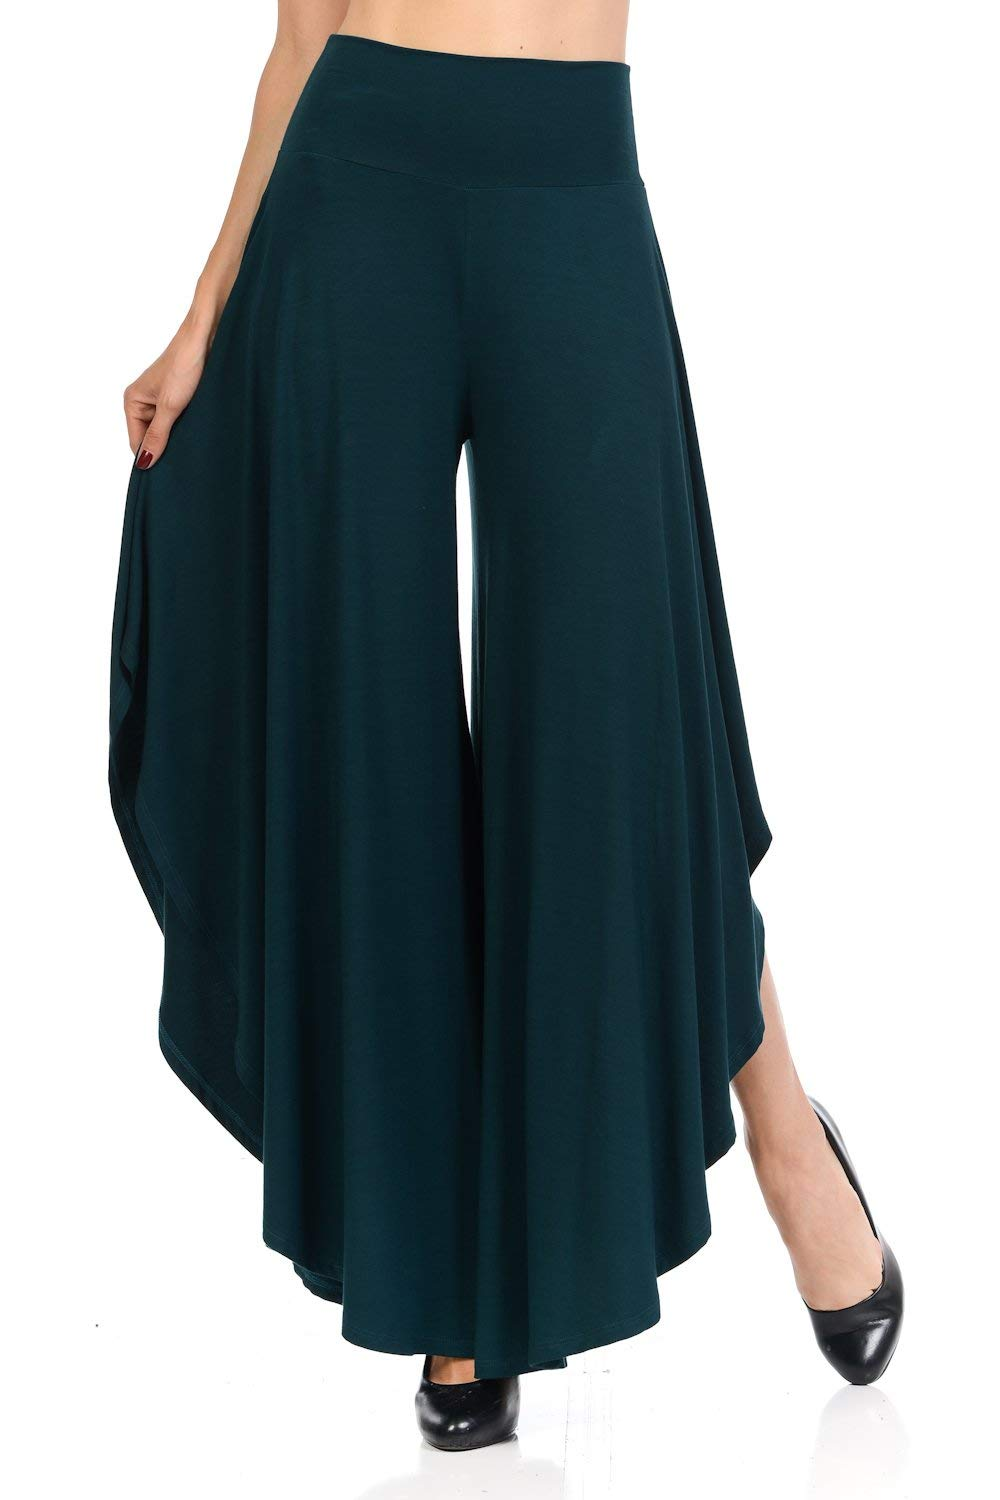 Layered Wide Leg Flowy Cropped Palazzo Pants, 3/4 Length High Waist Palazzo Wide Legs Capri Pants